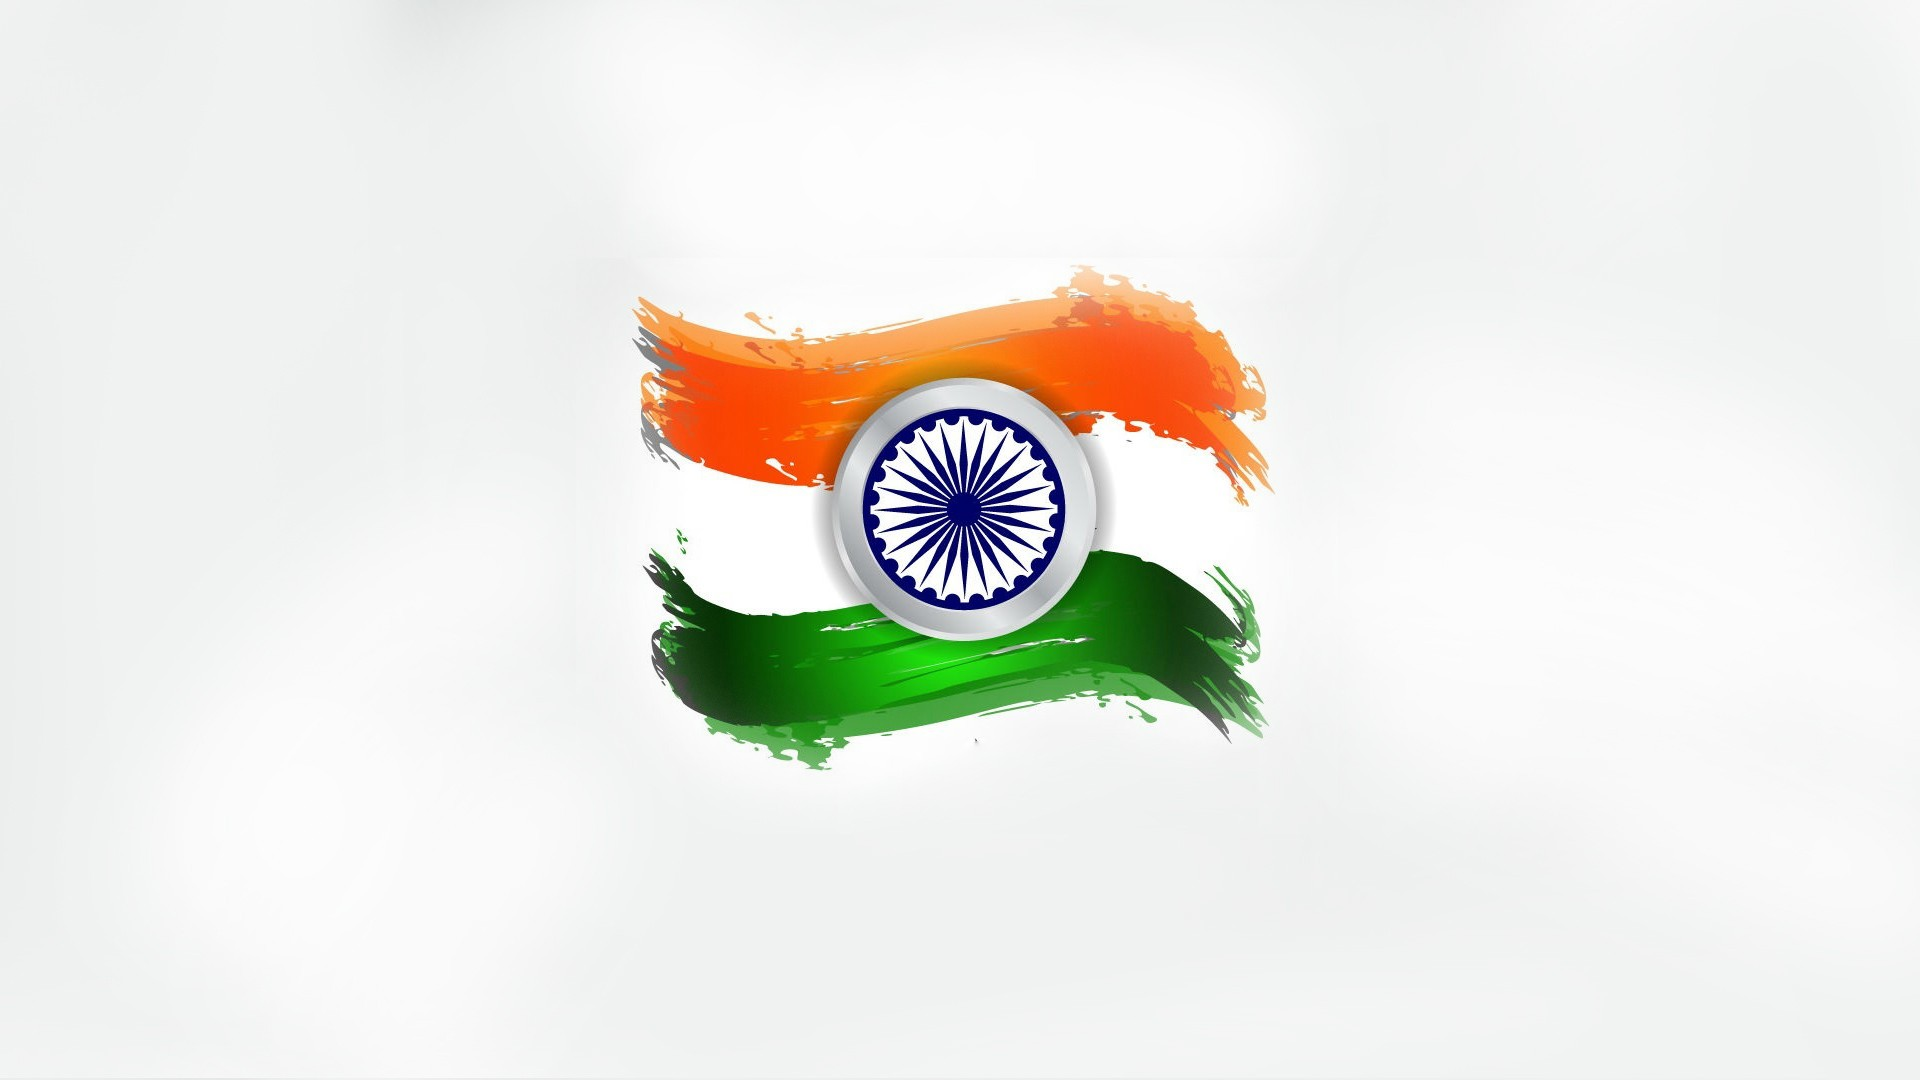 Flower With Indian Flag Hd: Indian Flag Pic HD With Simple Tricolor Design